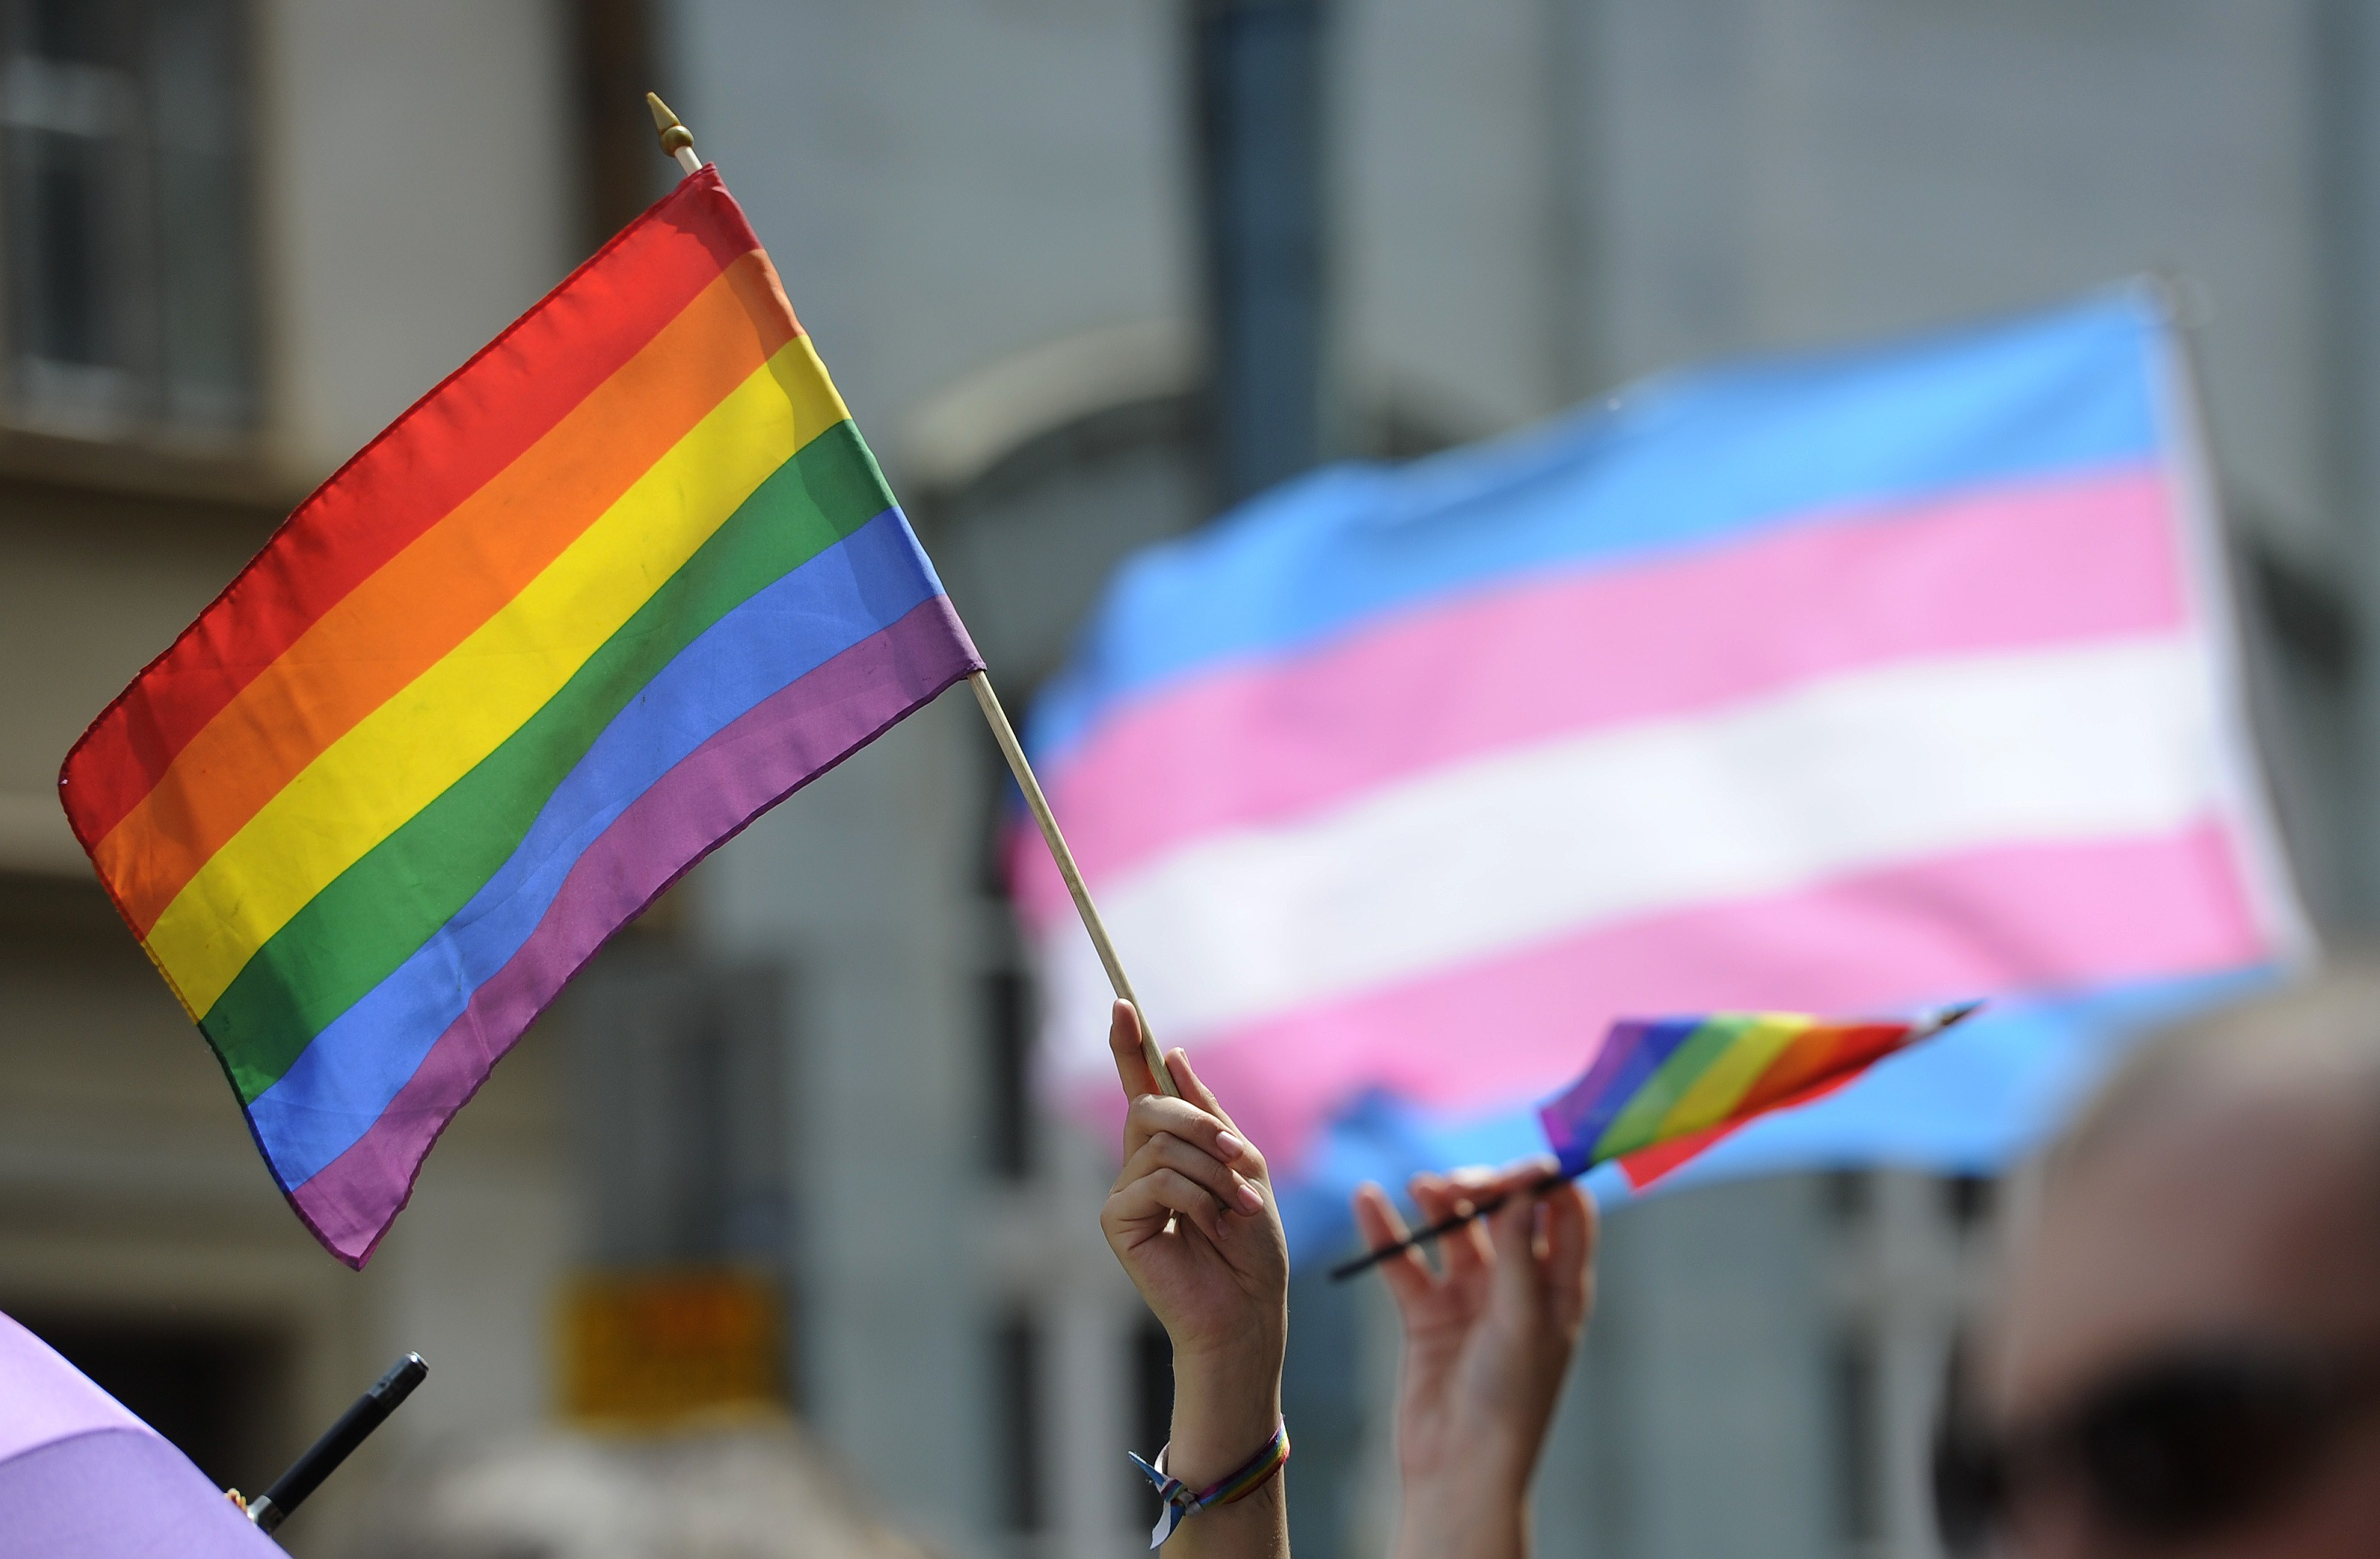 LGBTQ and trans flags.